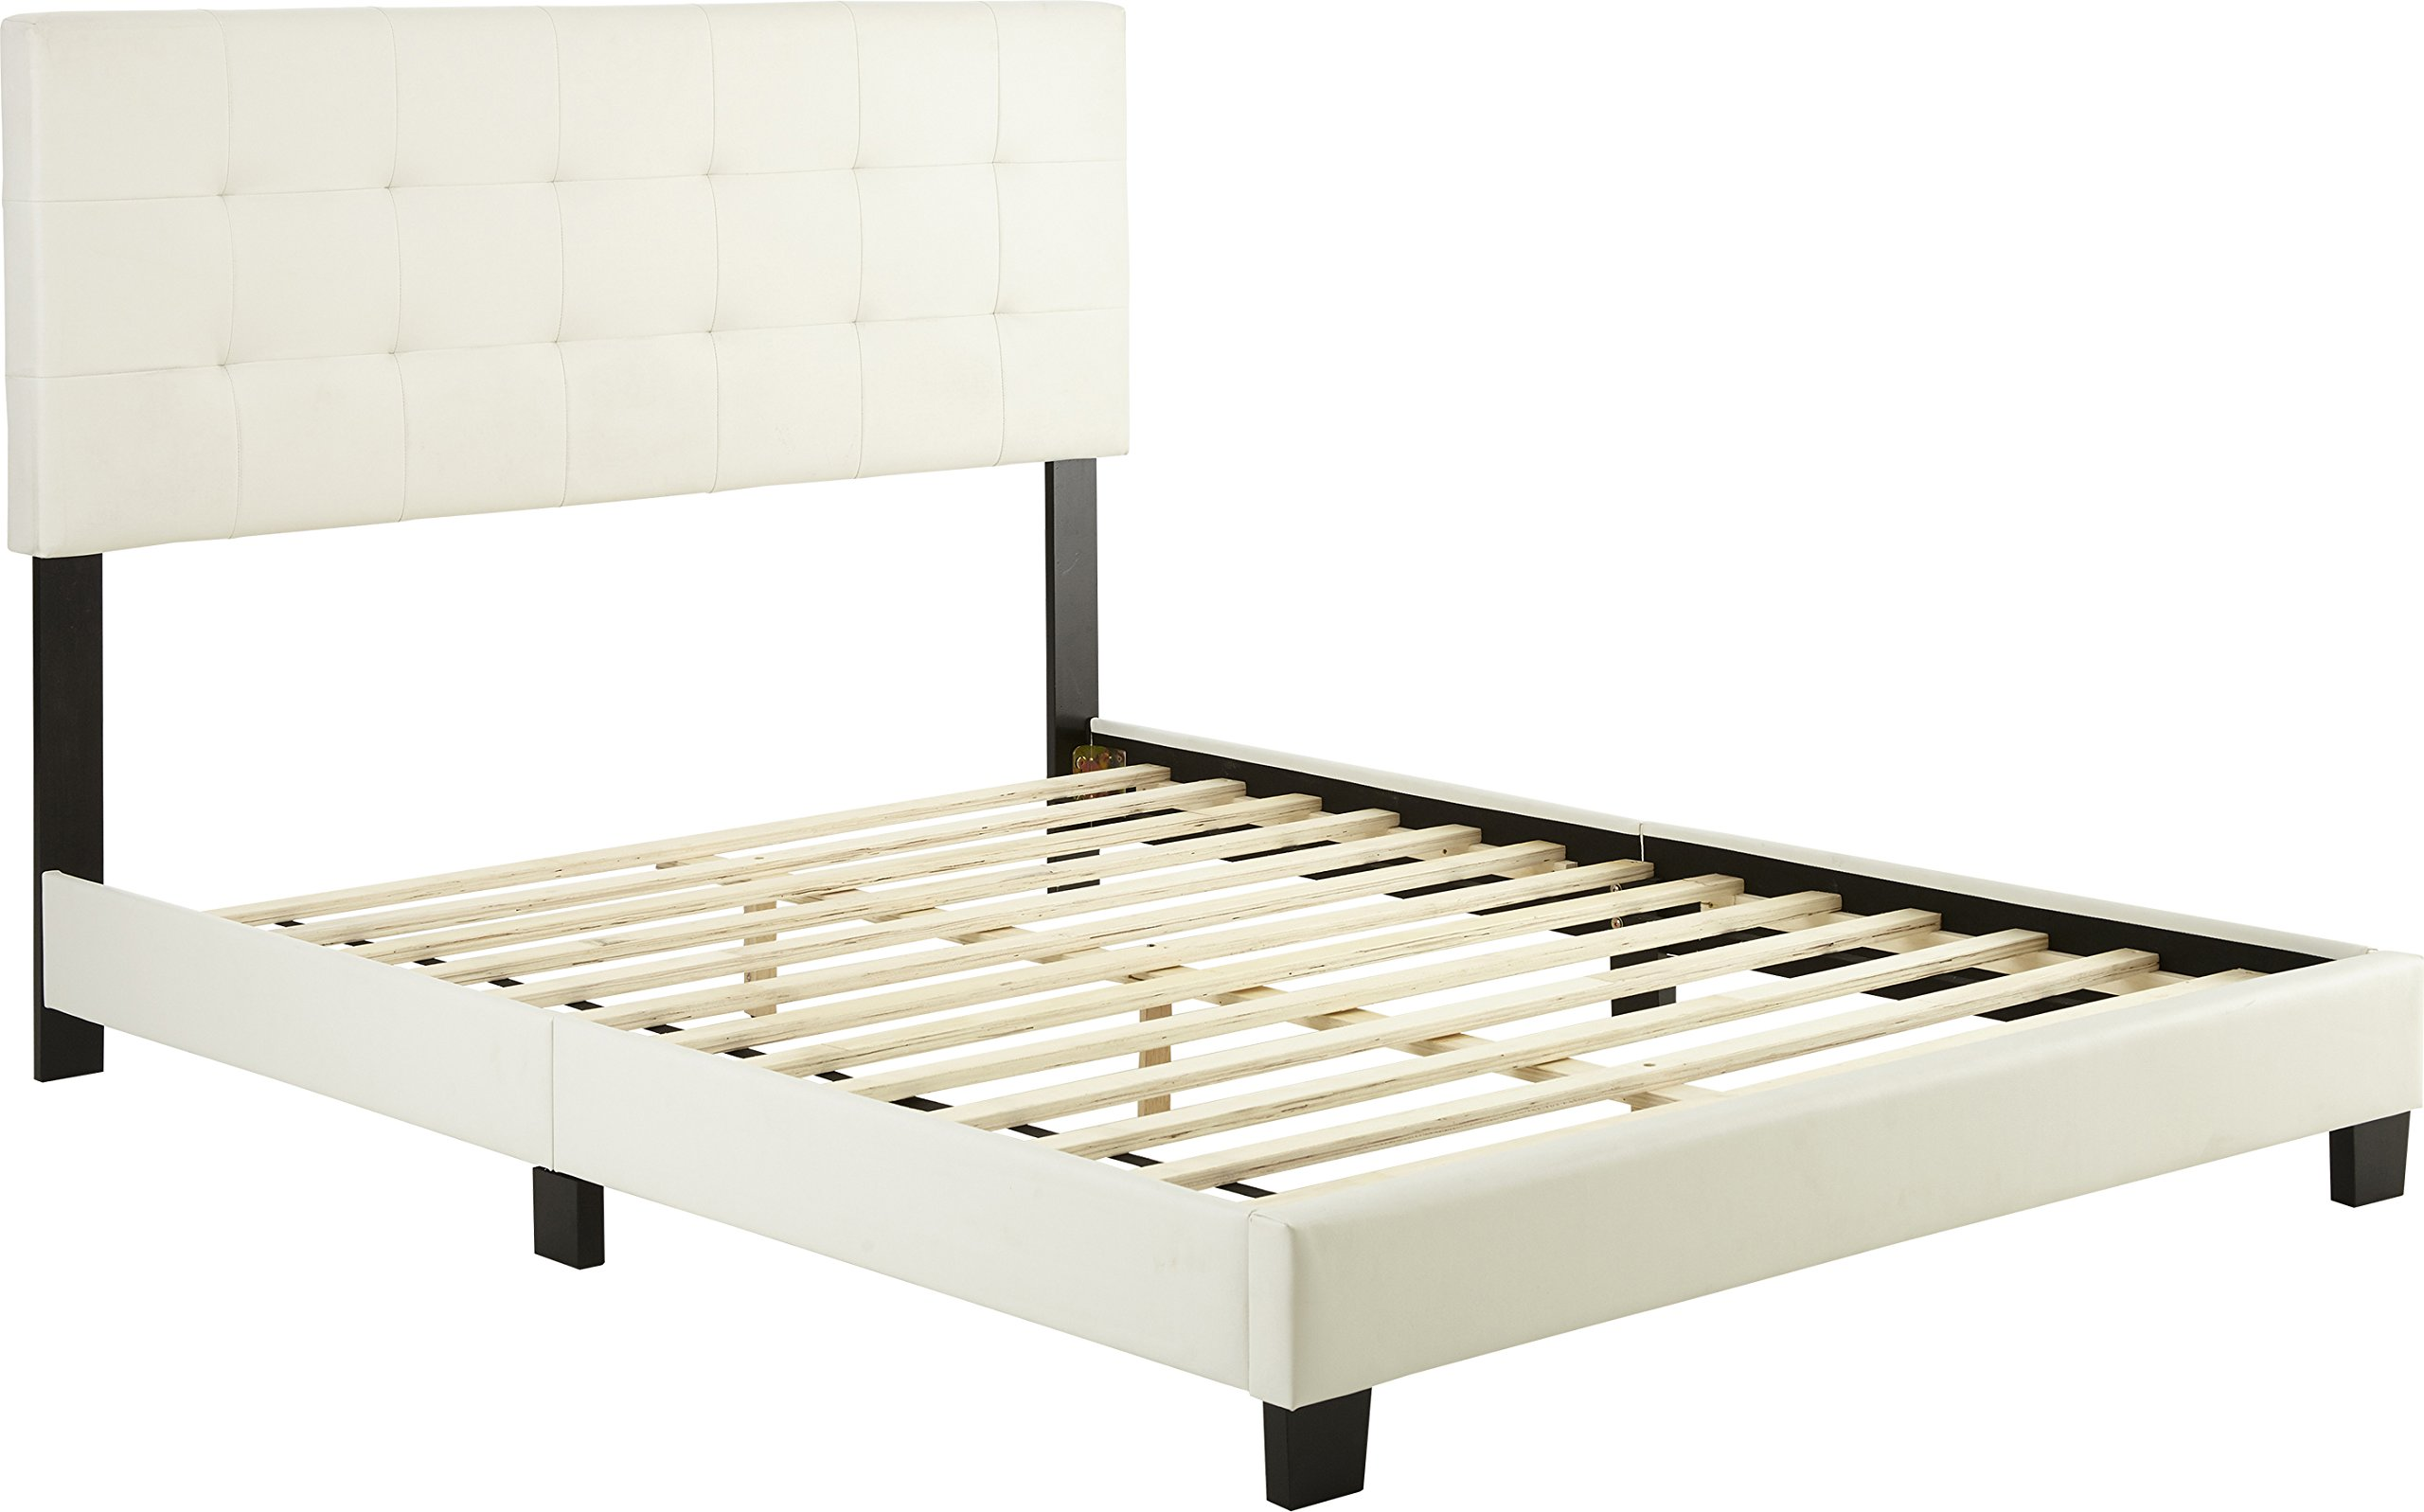 Flex Form Murphy Upholstered Platform Bed Frame with Tufted Headboard: Faux Leather, White, Full